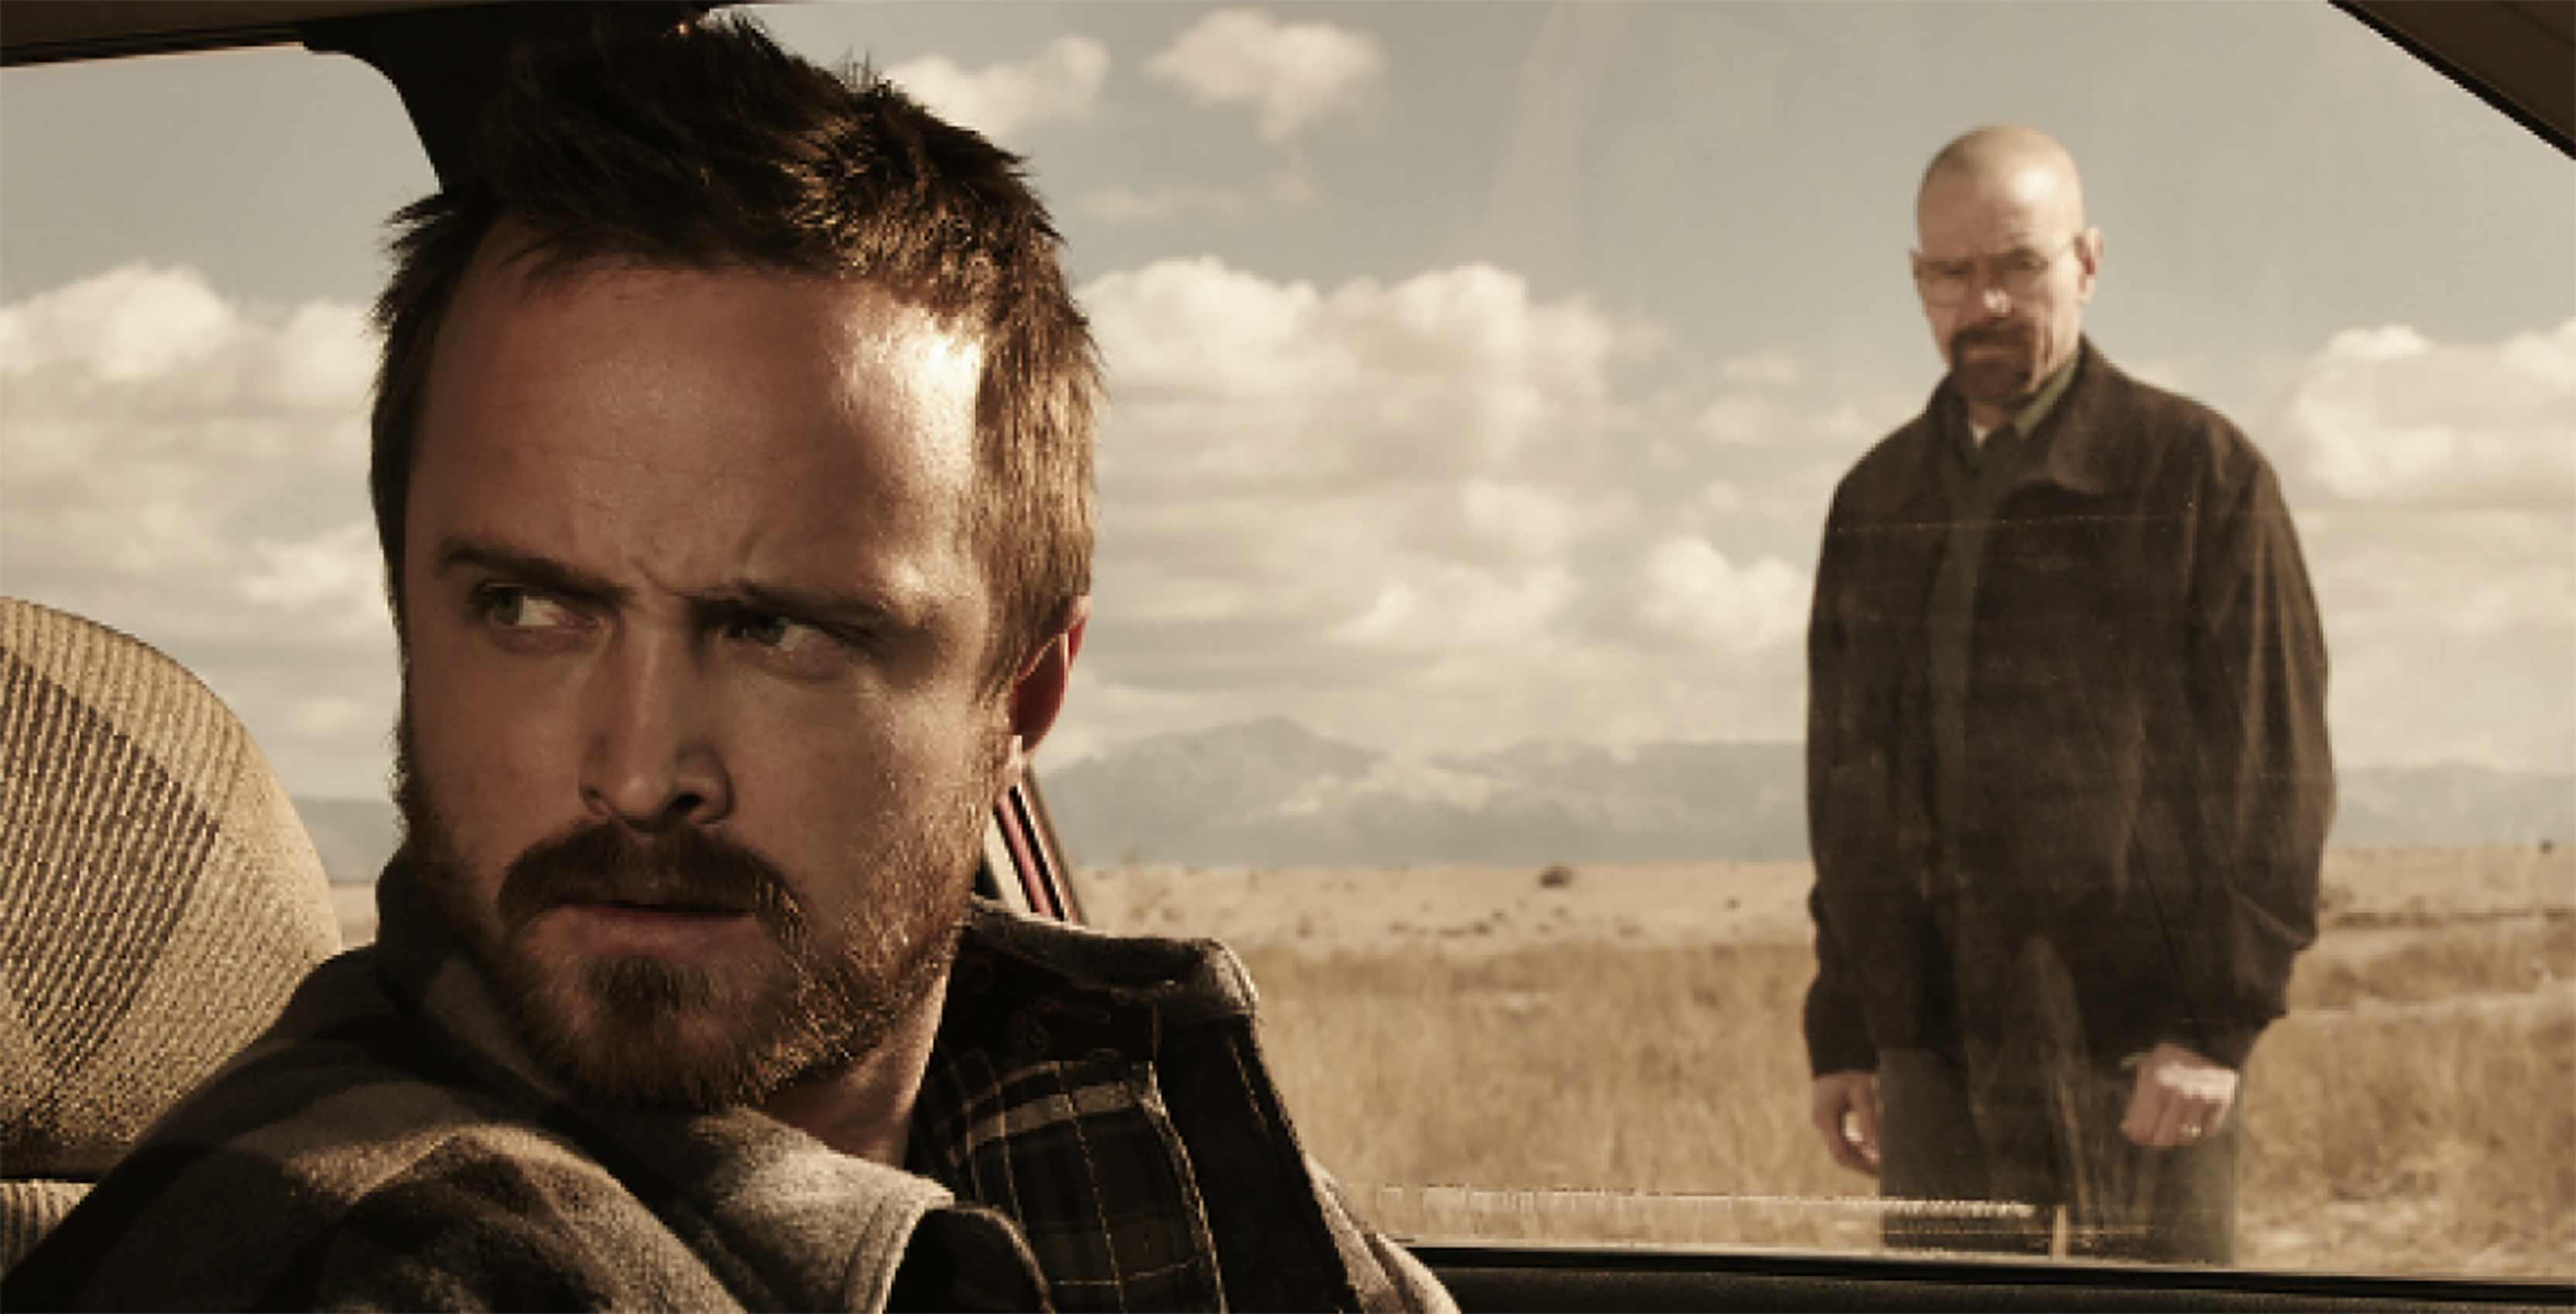 Breaking Bad movie listing and synopsis appear on Netflix